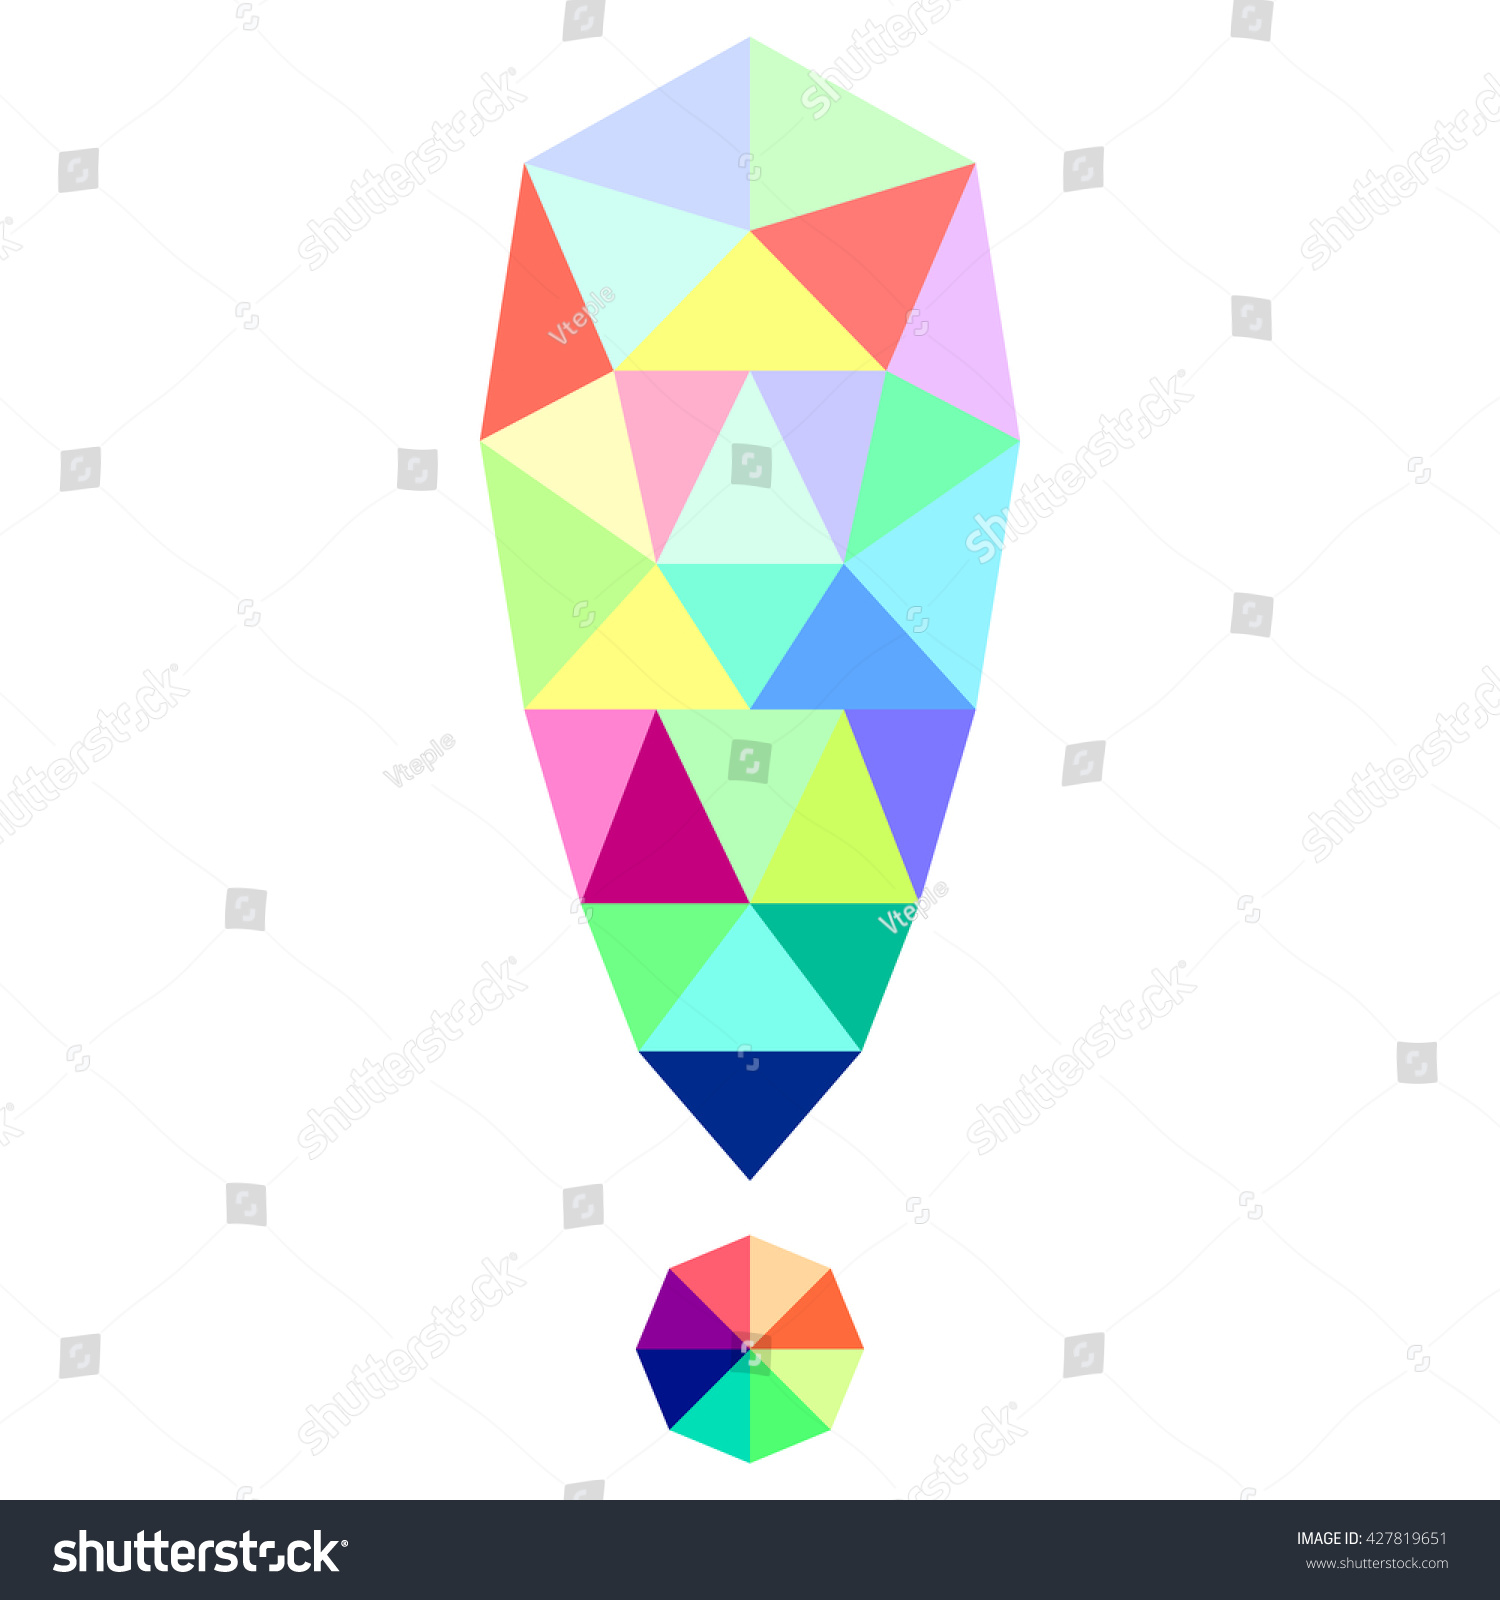 The exclamation point symbol attention of geometric shapes colorful triangles vector illustration